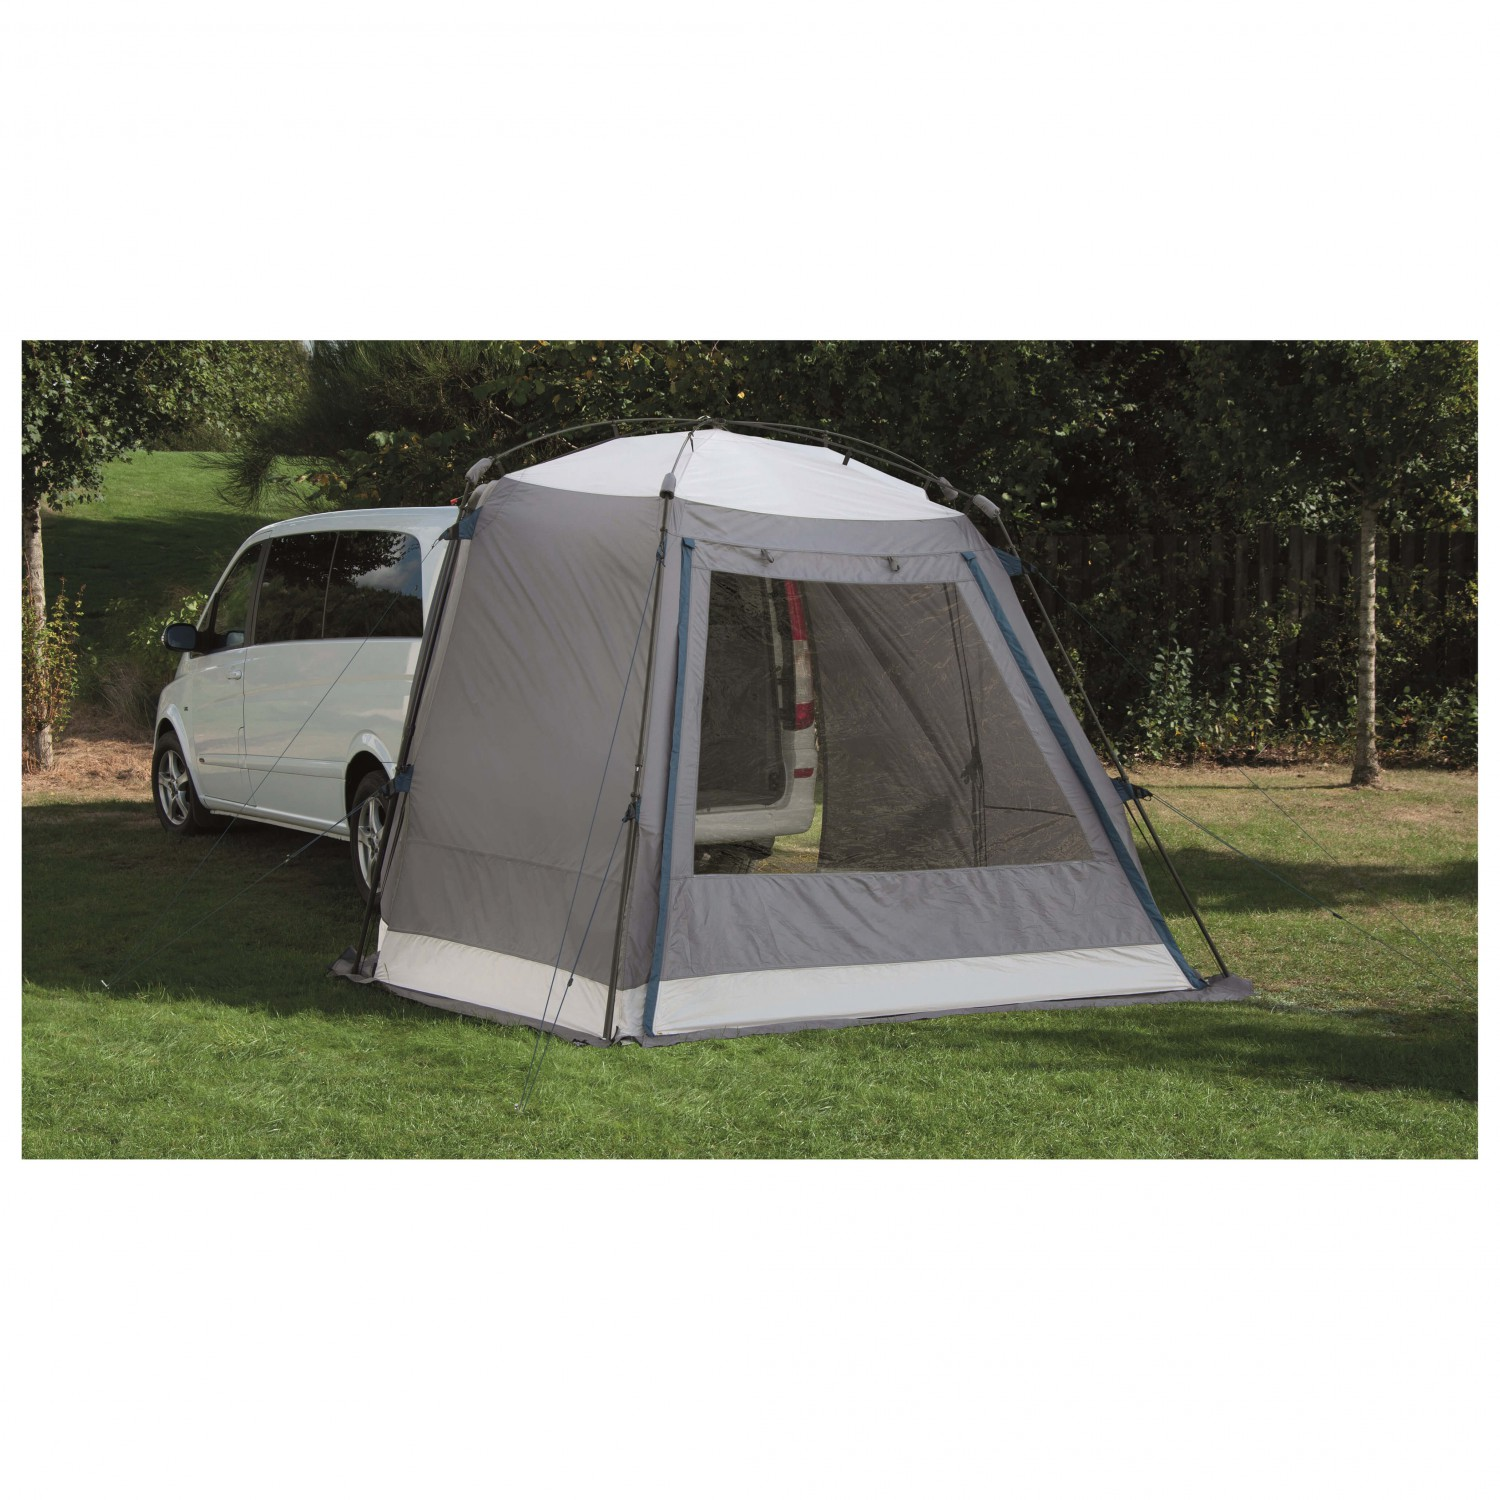 awnings youtube awning motorhome watch on practical